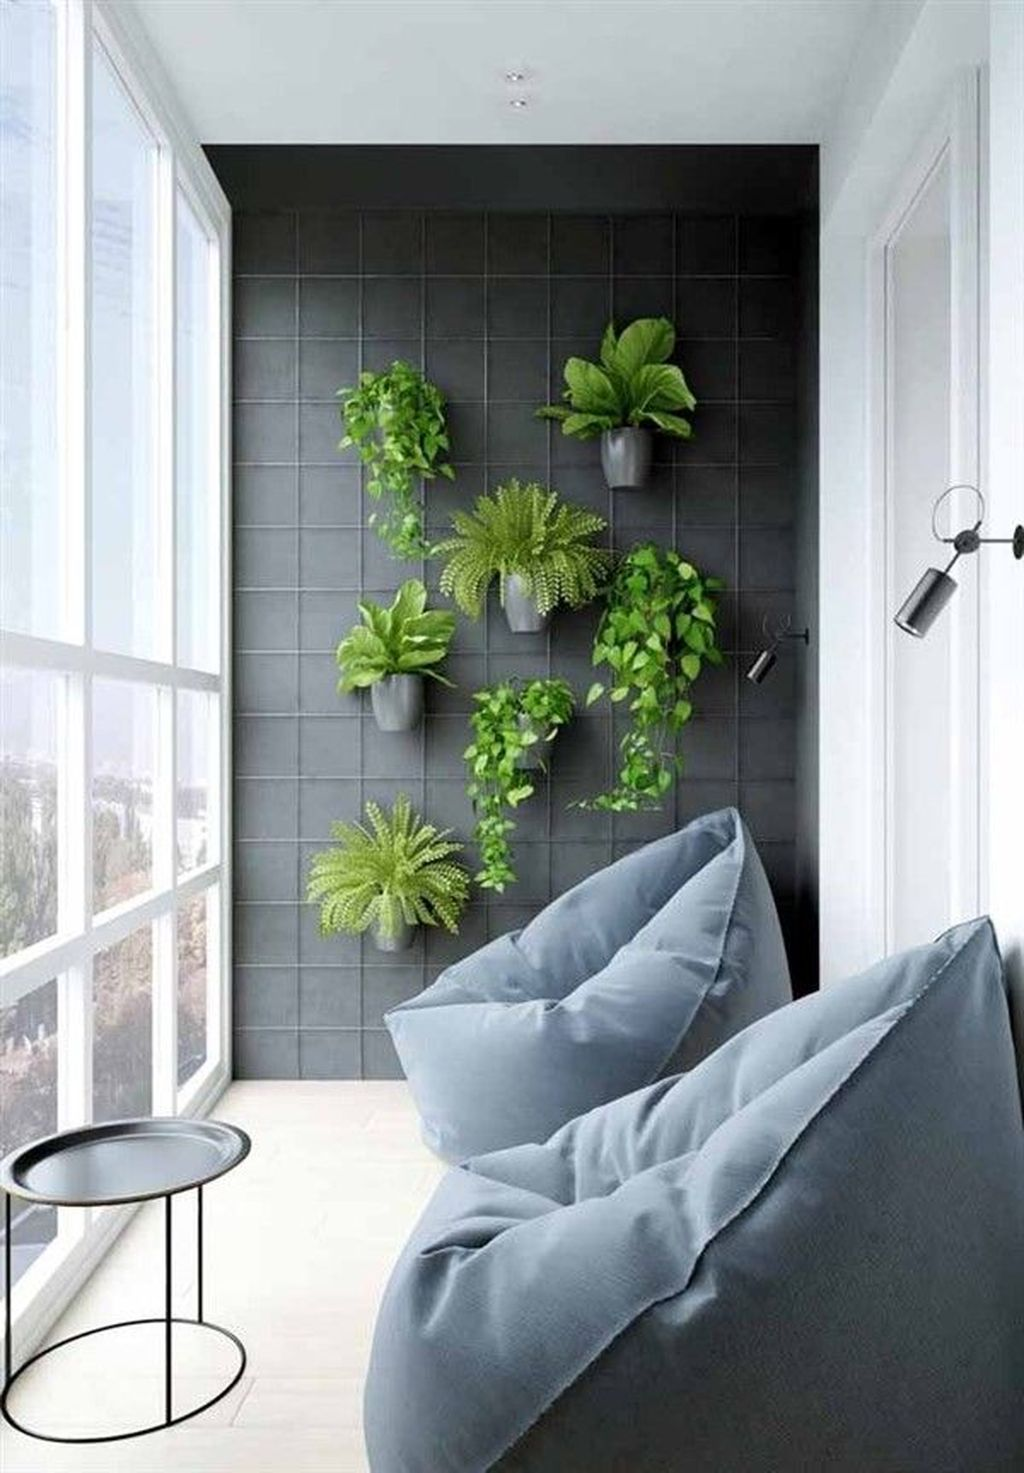 Photo of 60 kleine Wohnung Balkon Garten Design-Ideen #apartmentbalconygarden 60 kleine W…